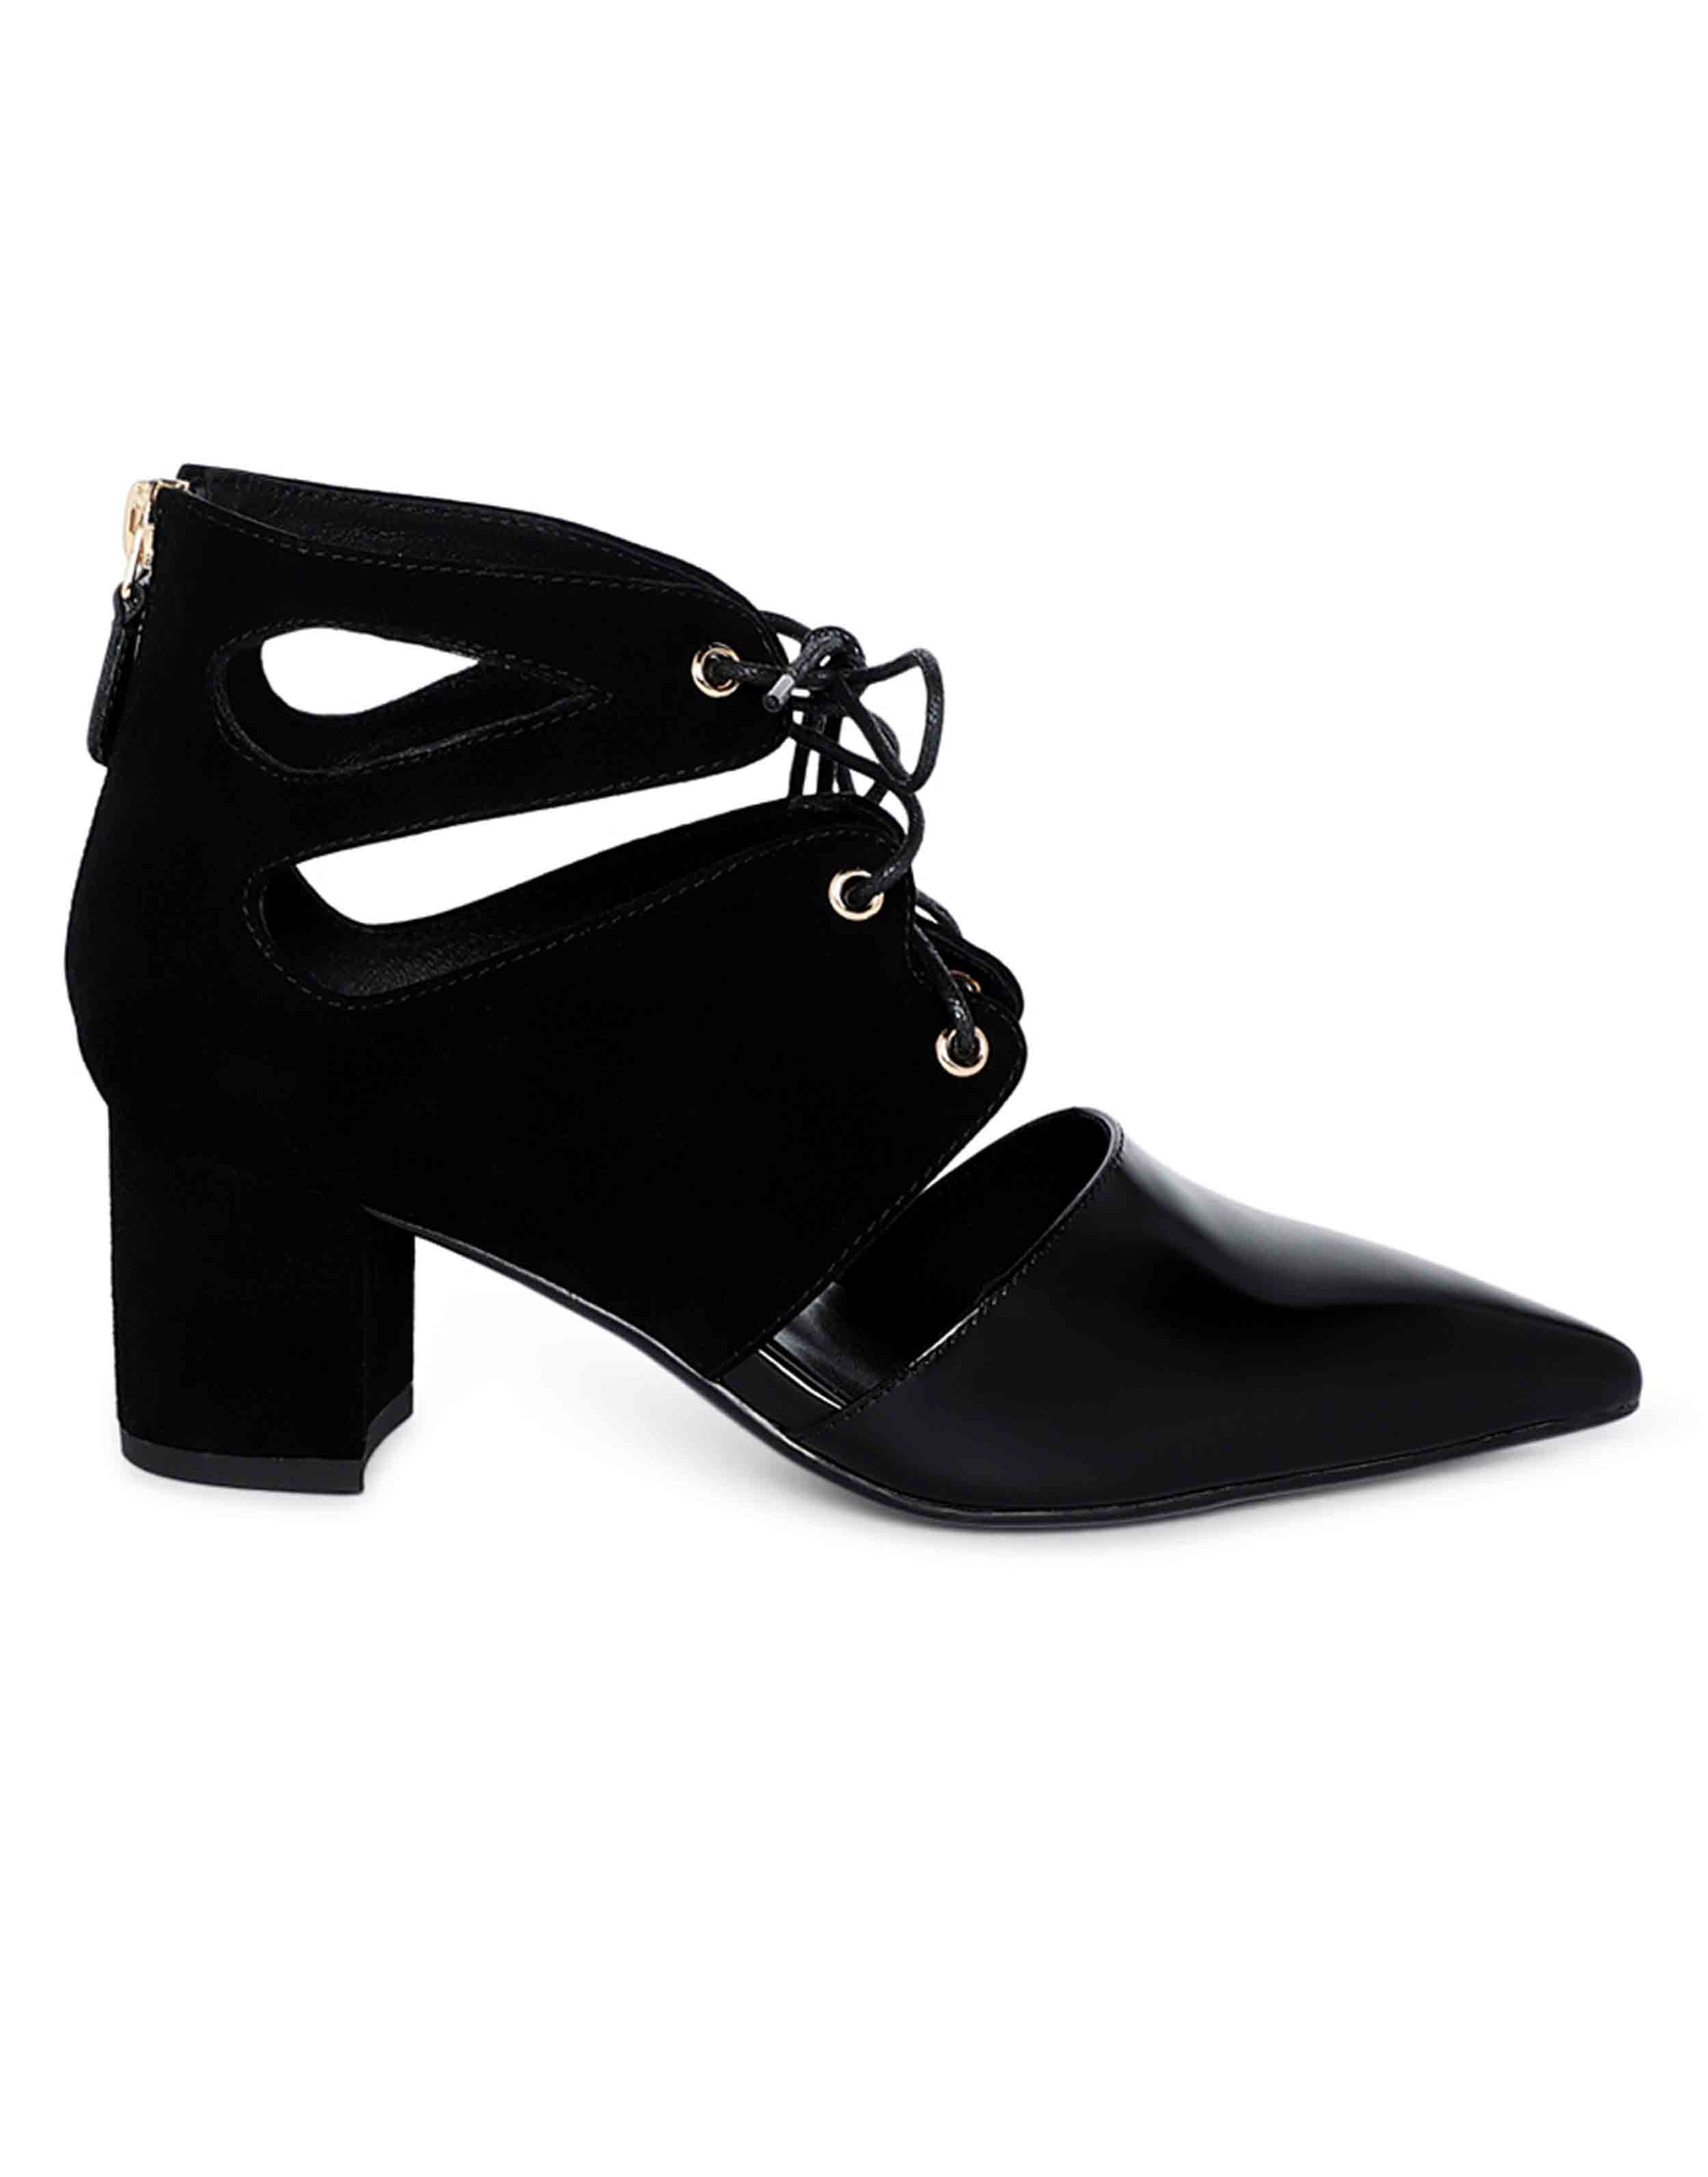 Cut-out Ankle Boots1